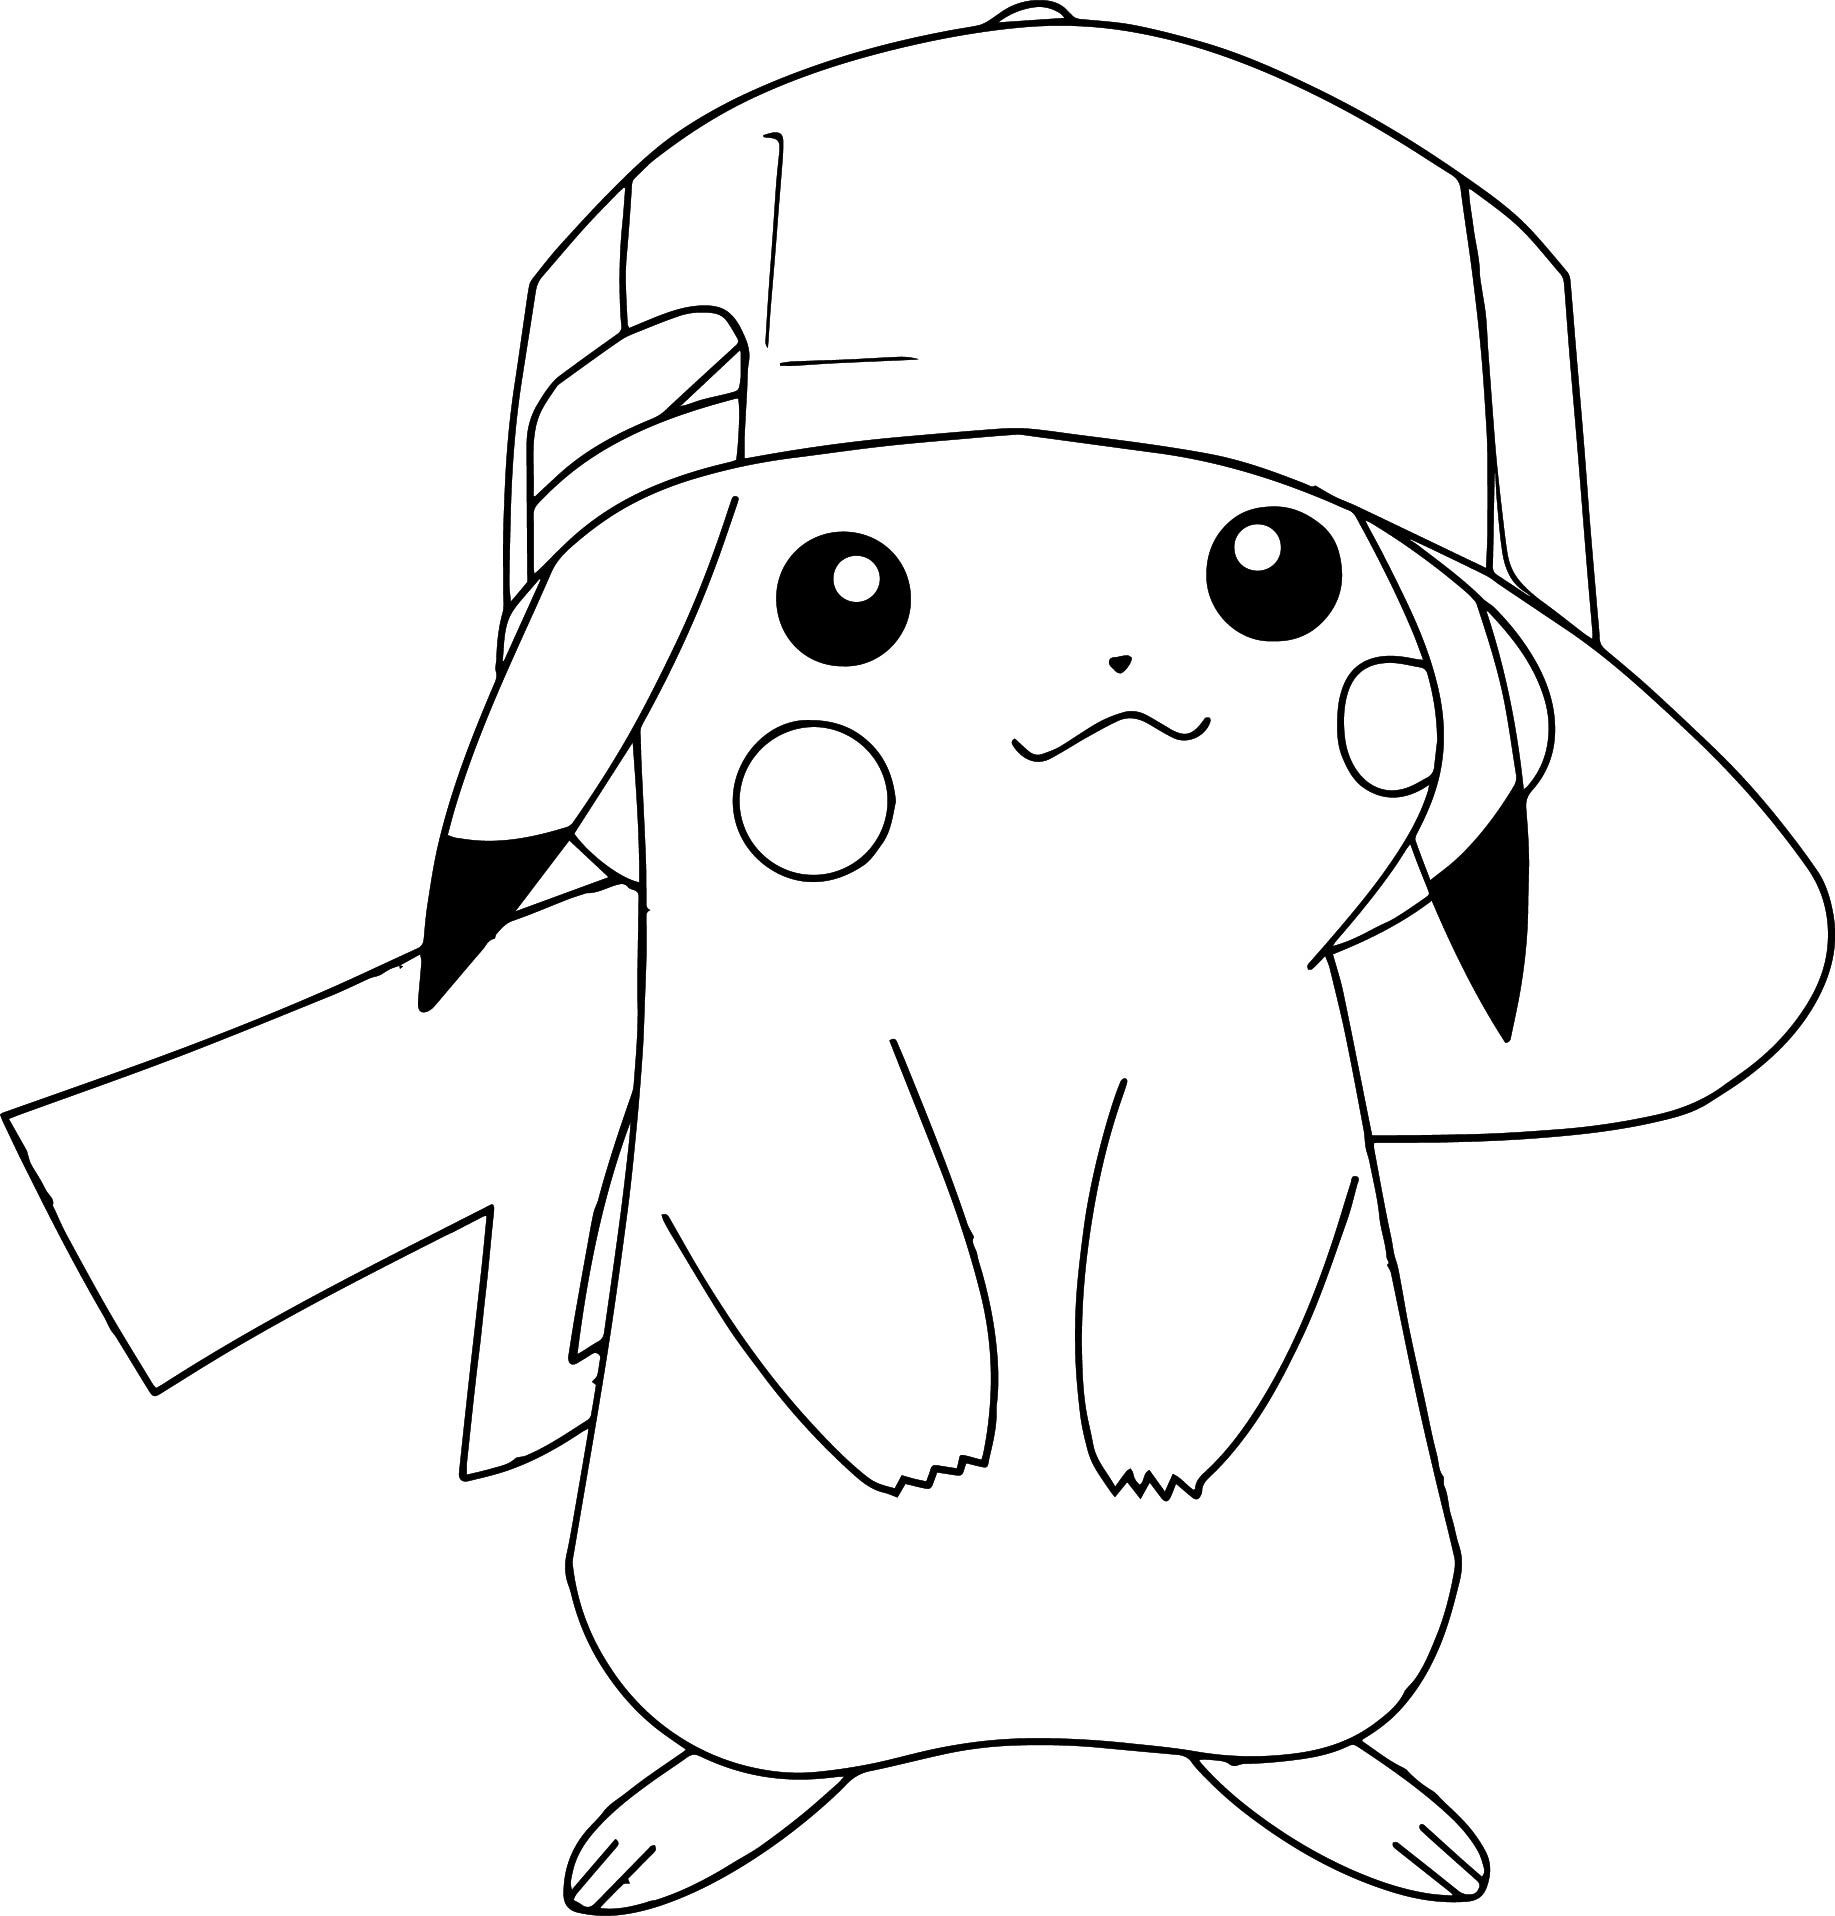 Cute Baby Pokemon Coloring Pages Gallery Pikachu Coloring Page Cartoon Coloring Pages Pokemon Coloring Sheets